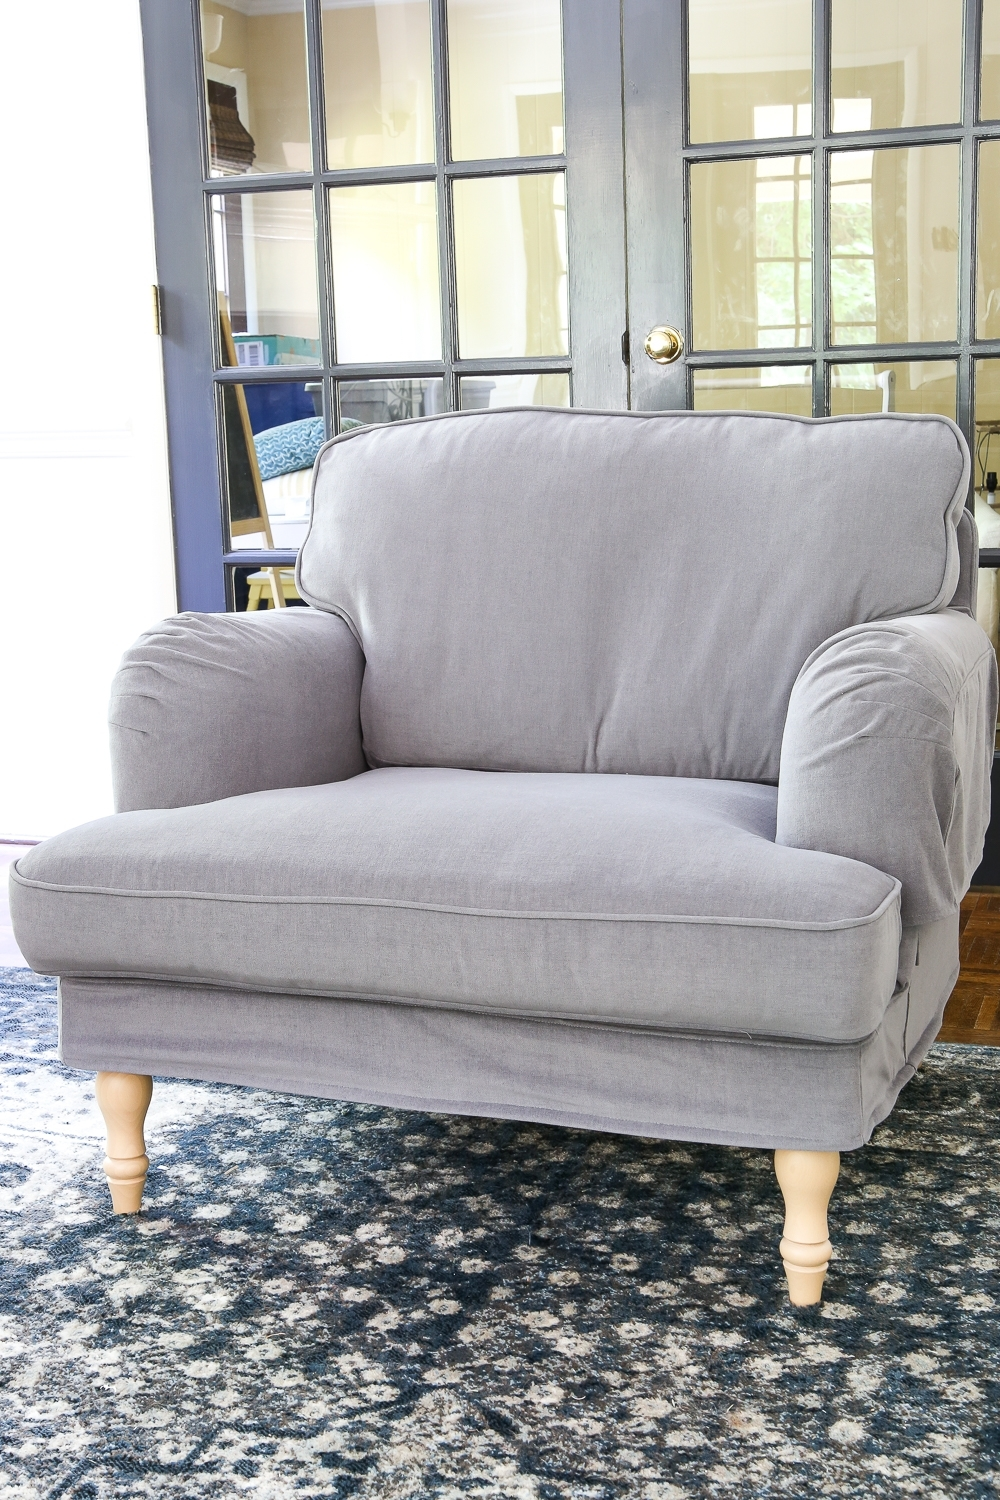 Ikea's New Sofa And Chairs And How To Keep Them Clean – Bless'er House For Well Liked Comfortable Sofas And Chairs (View 12 of 20)